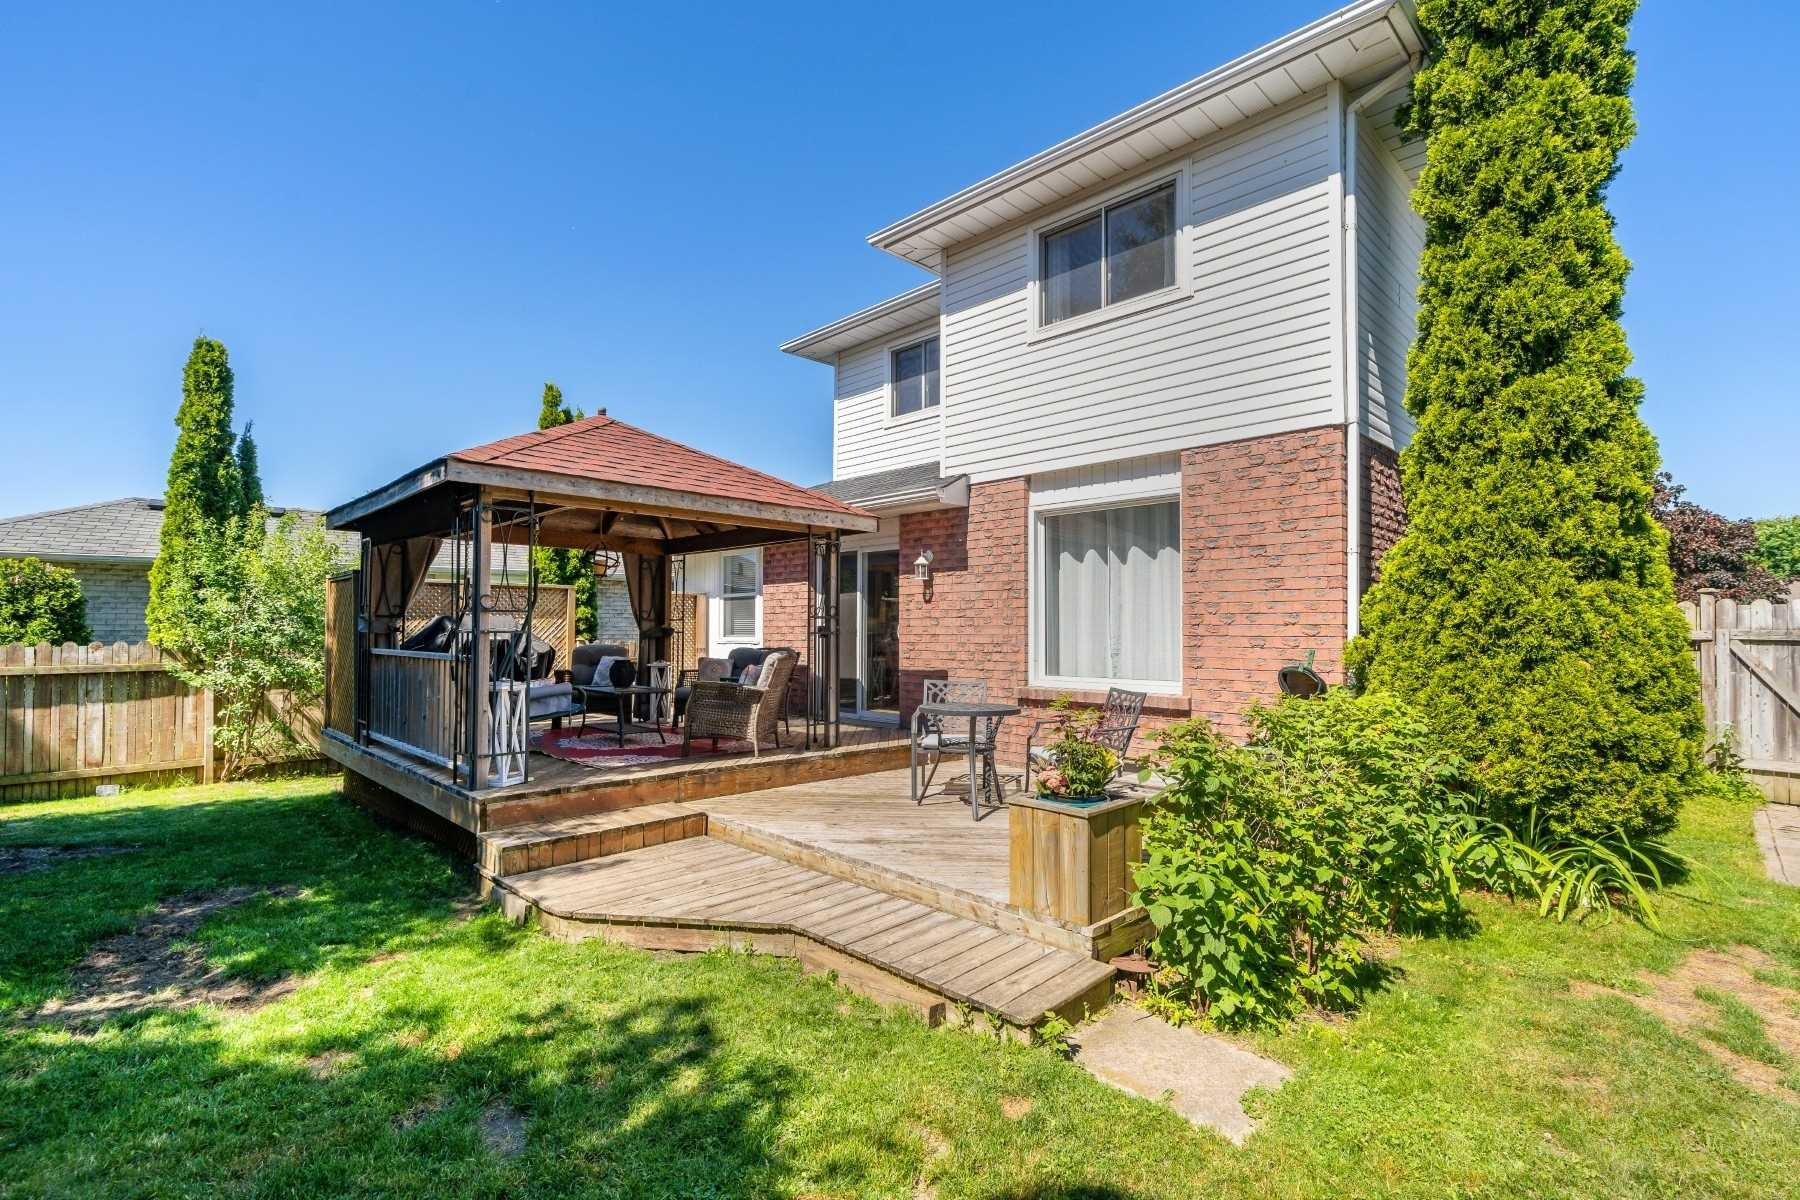 Photo 32: Photos: 1153 Snowberry Court in Oshawa: Pinecrest House (2-Storey) for sale : MLS®# E4794796